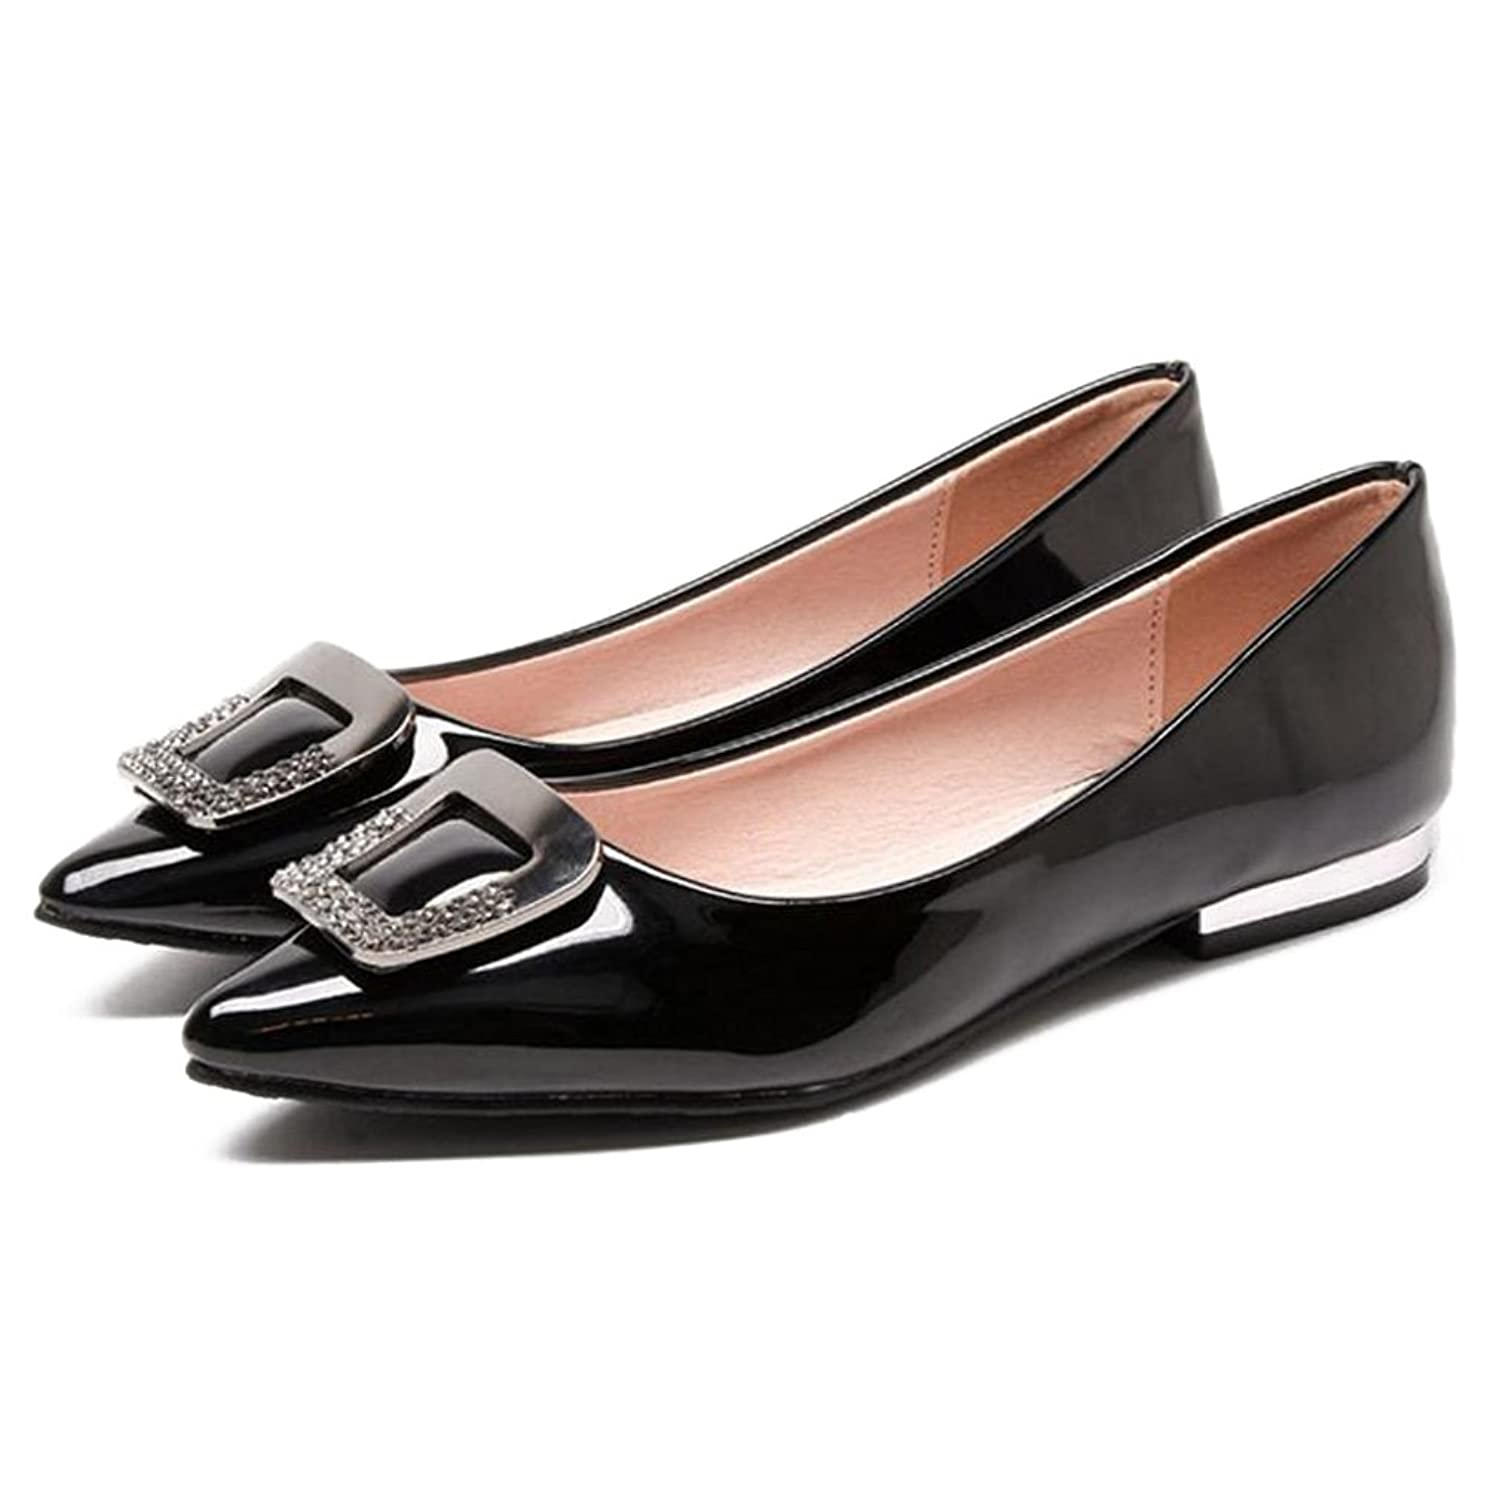 e3cd3c10ab59 Women s Comfort Light Faux Leather Ballet Shoes Classic Pointy Toe Slip On  Flats